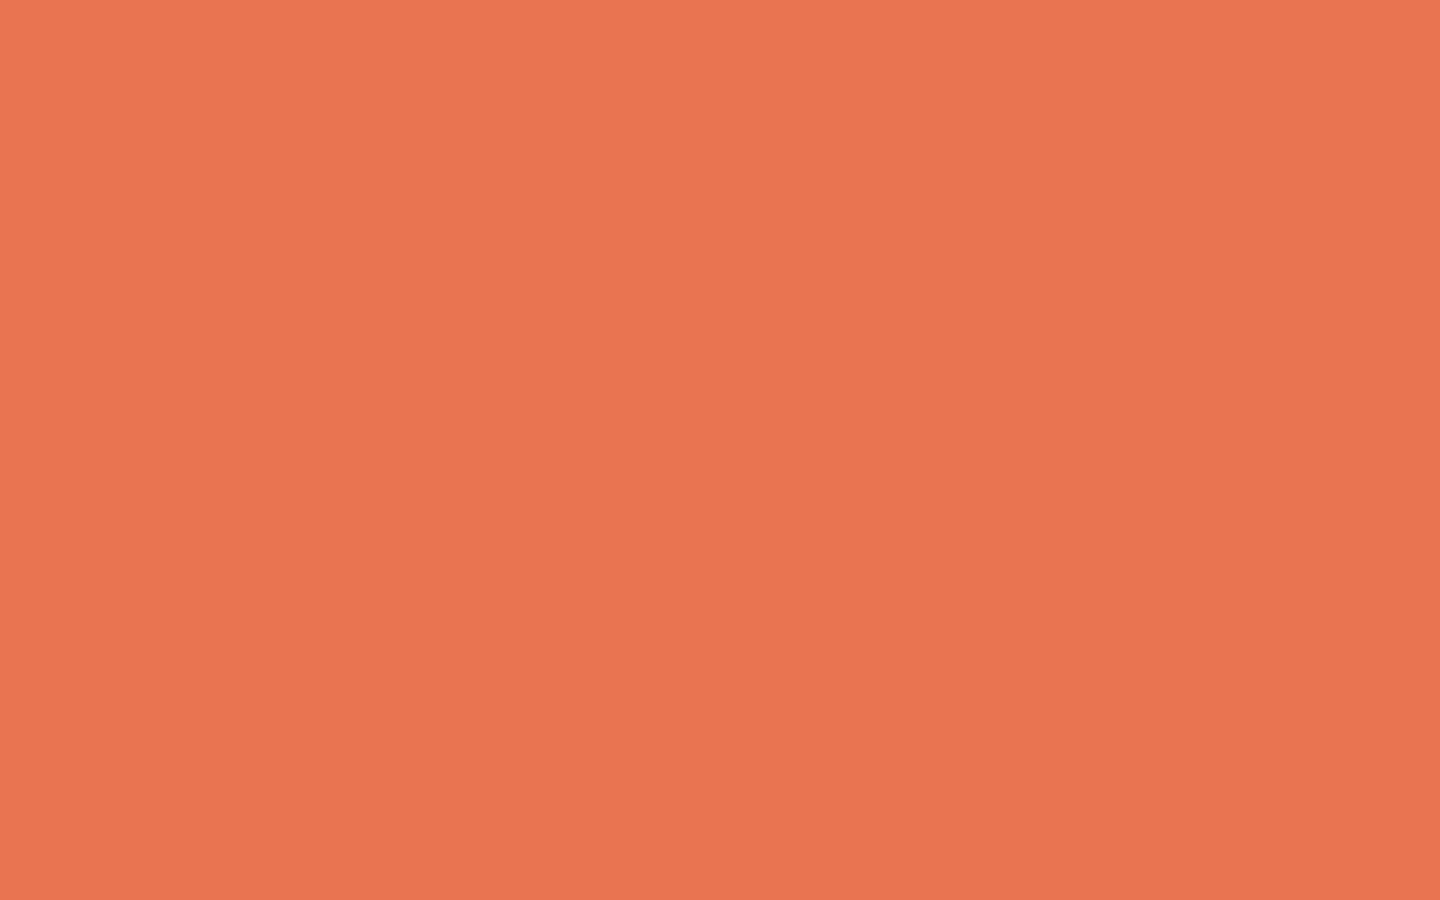 1440x900 Burnt Sienna Solid Color Background